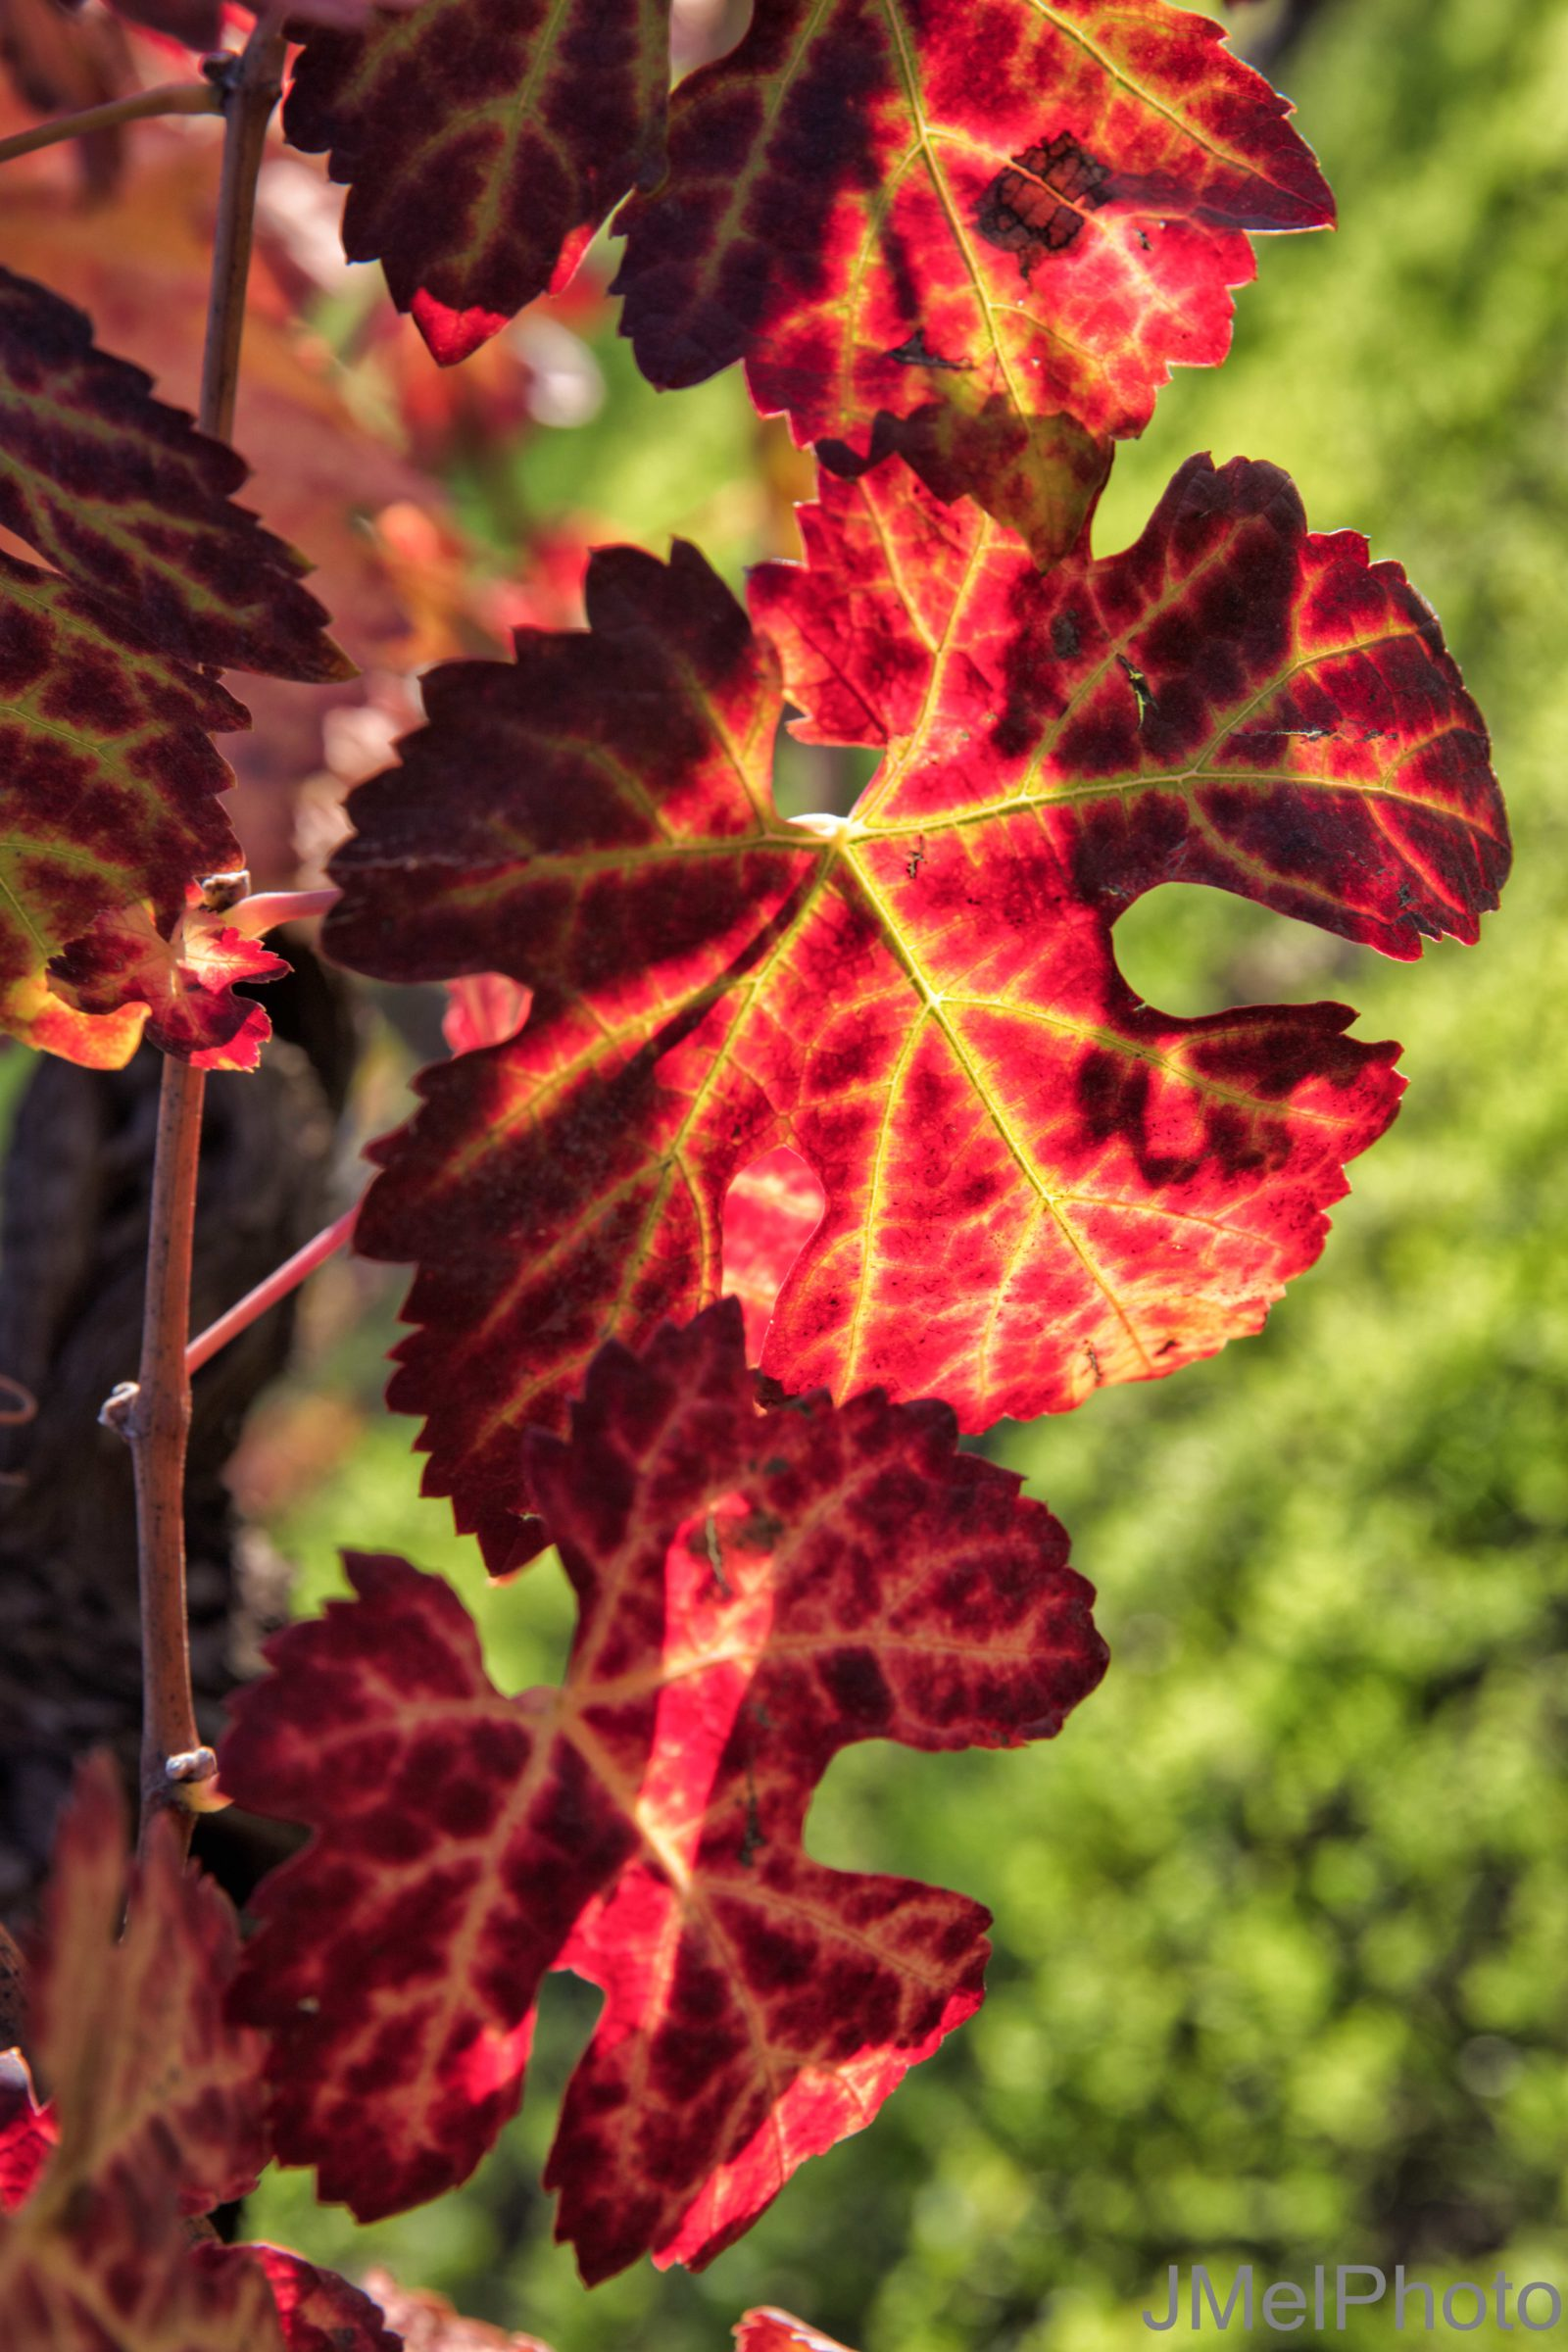 Backlit Vine Leaves in the Fall